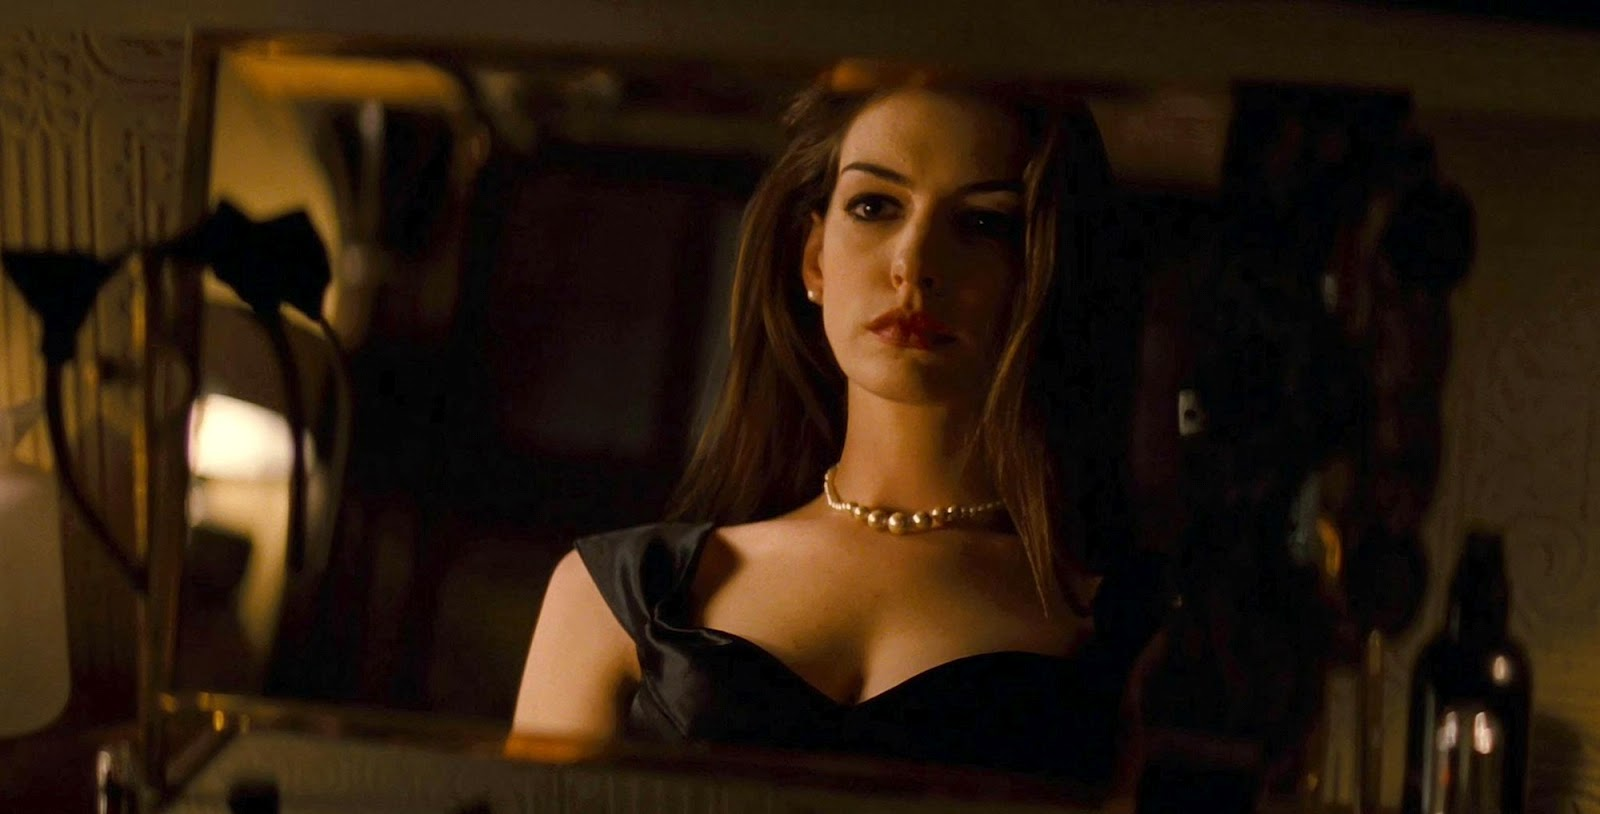 anne hathaway as selina kyle/catwoman - page 670 | nolan fans forums